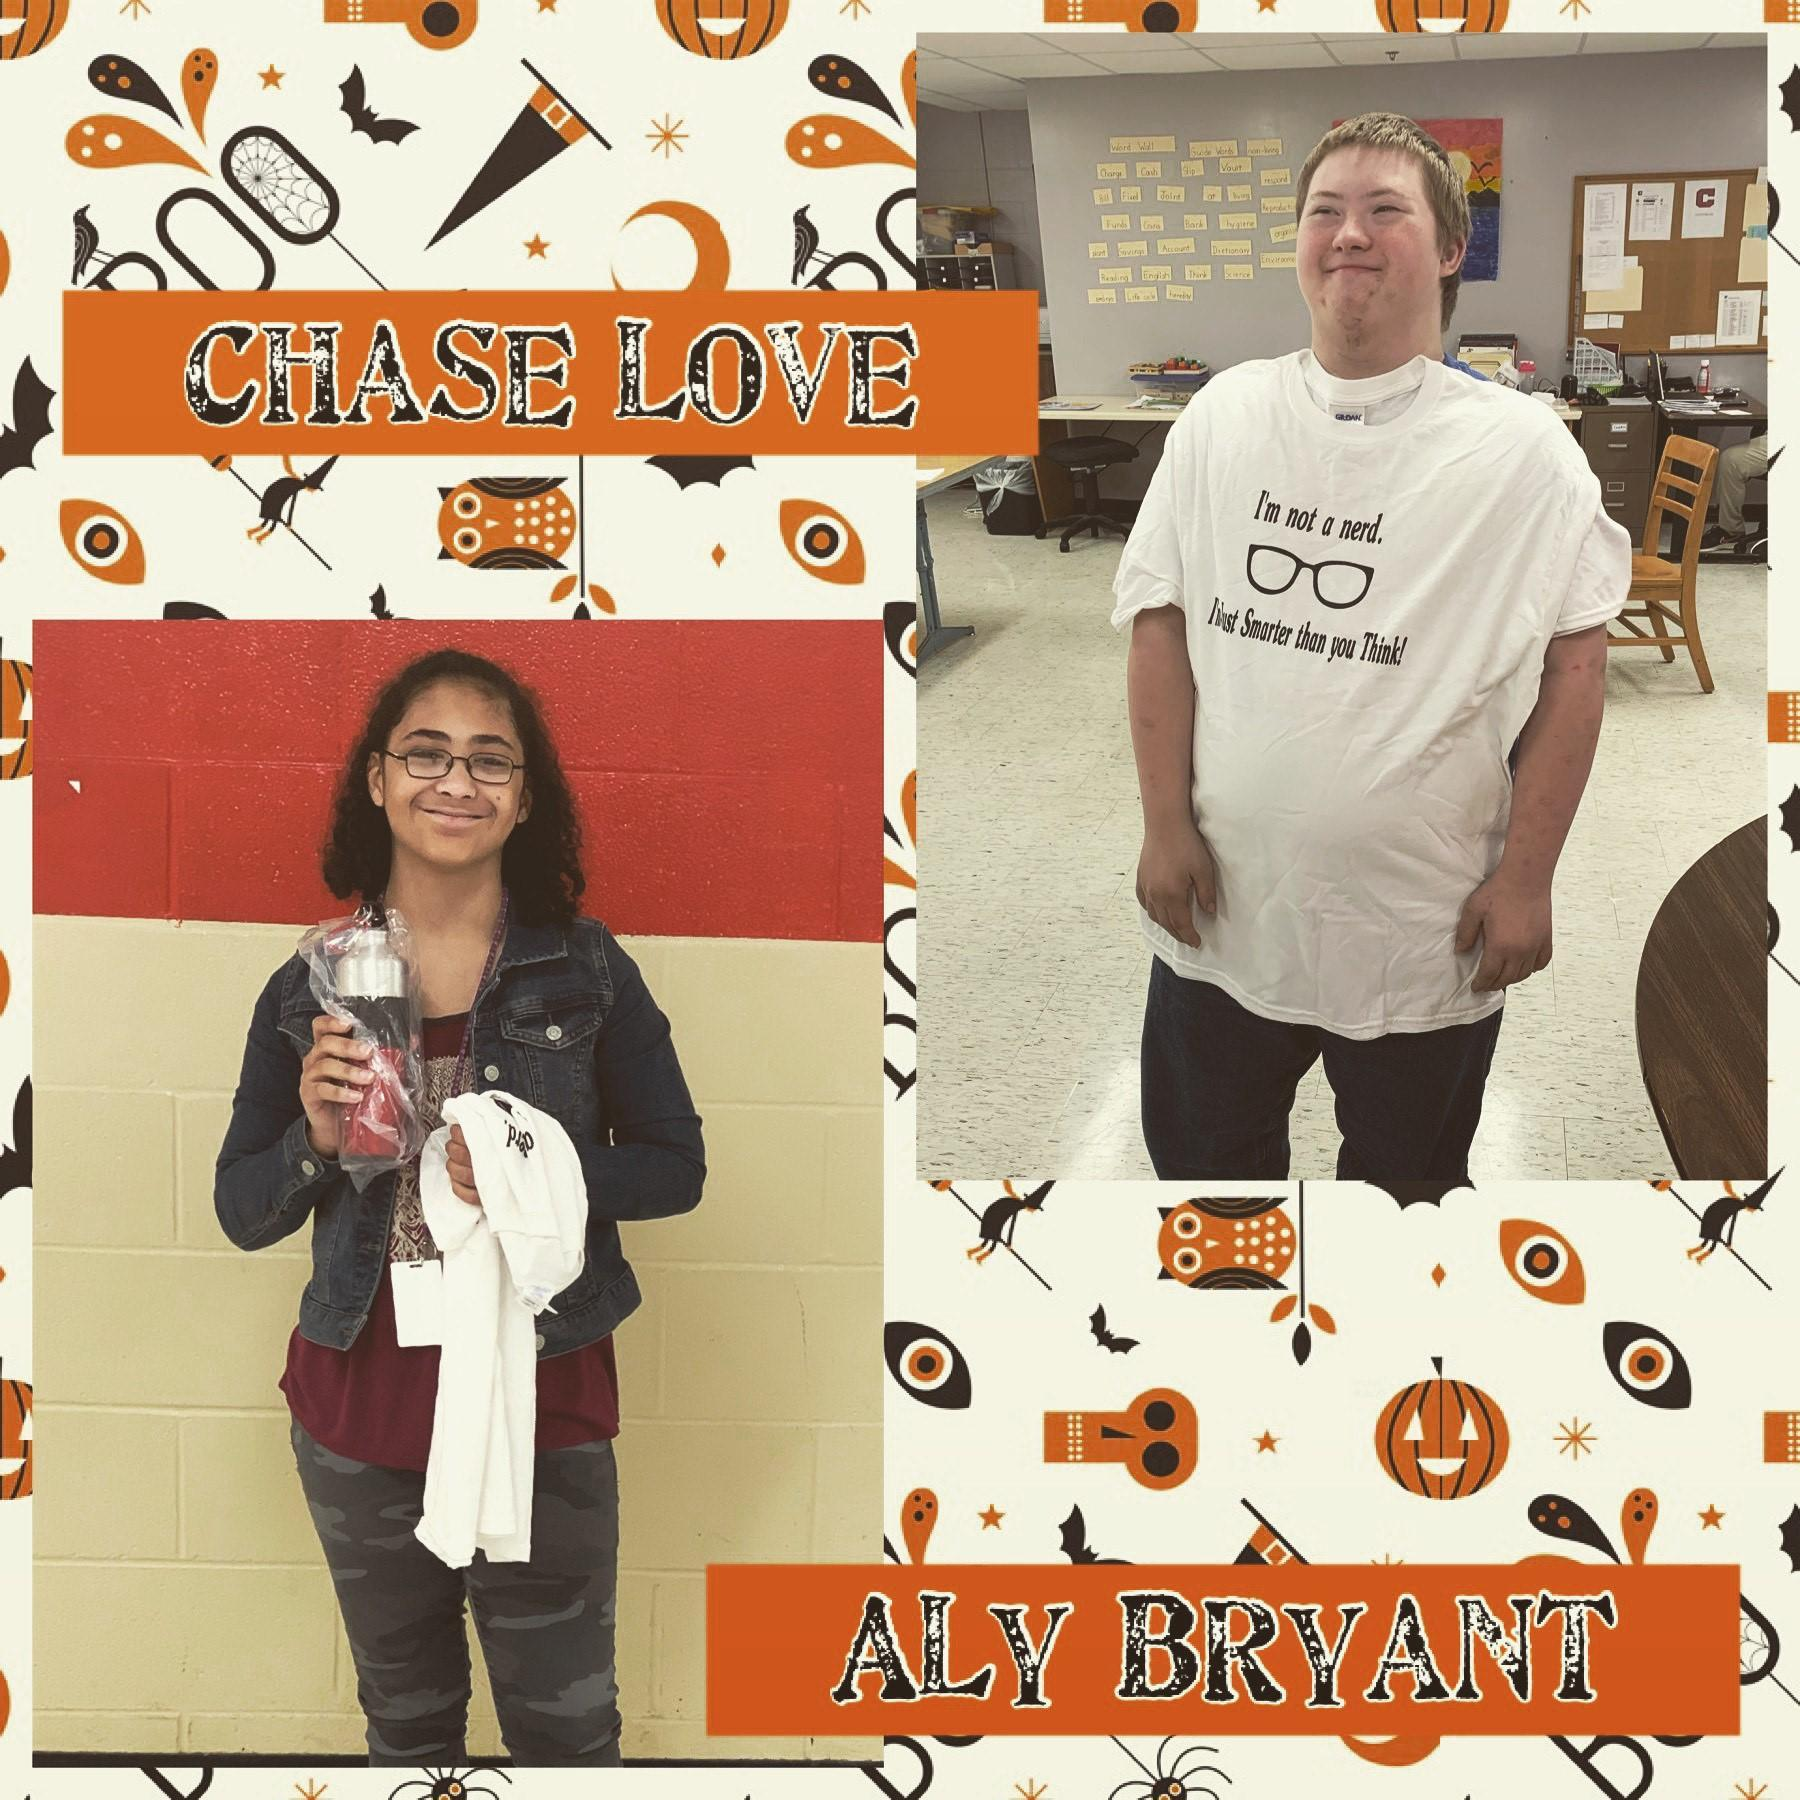 Congratulations to our students of the week! Each week we highlight two students who are actively co